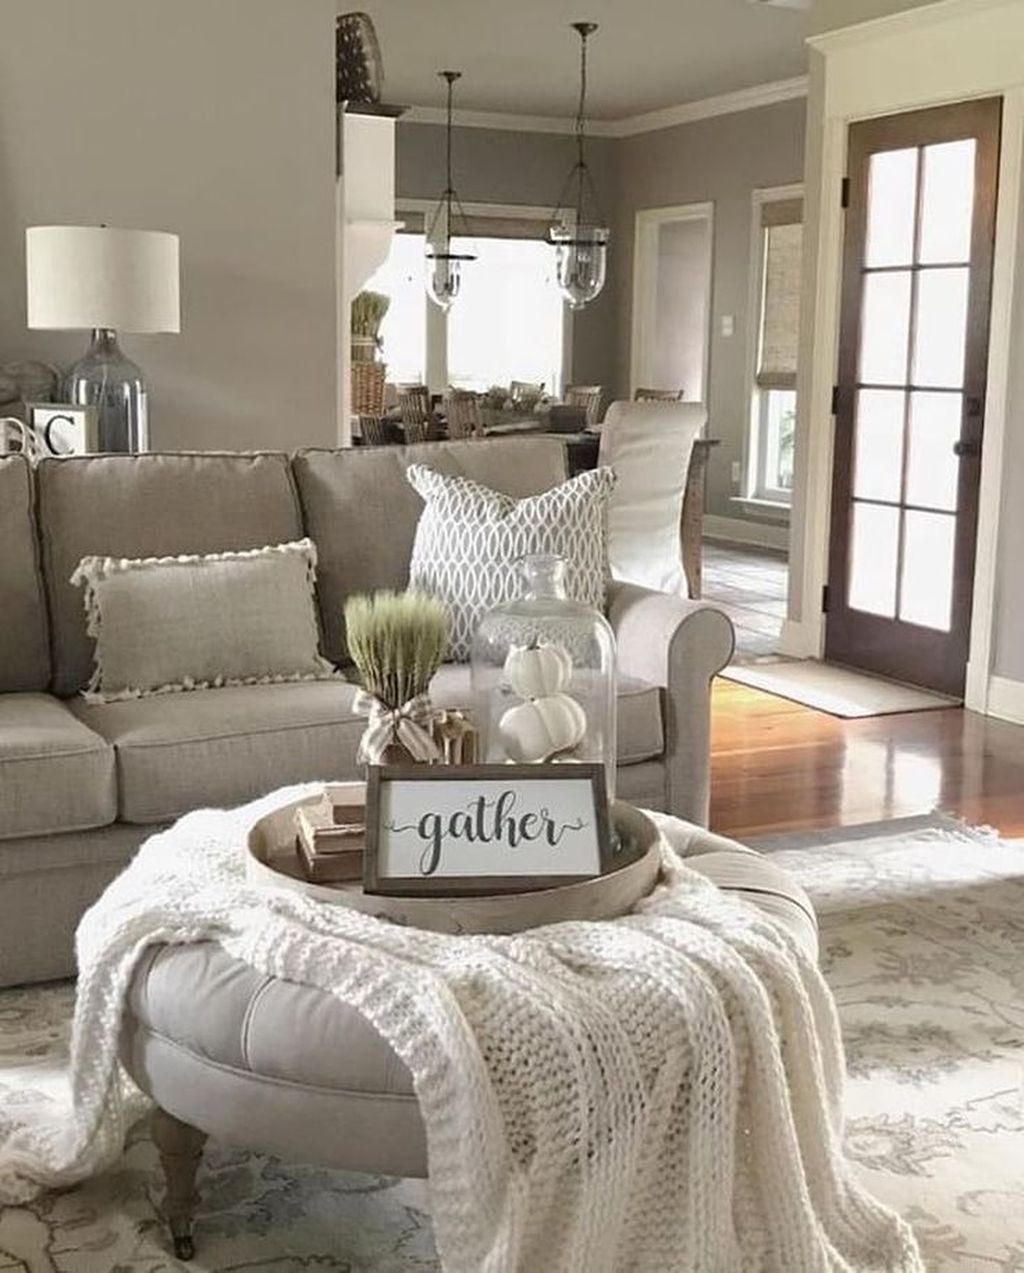 76 Awesome Country Farmhouse Decor Living Room Ideas With Images Farmhouse Decor Living Room Modern Farmhouse Living Room Farm House Living Room